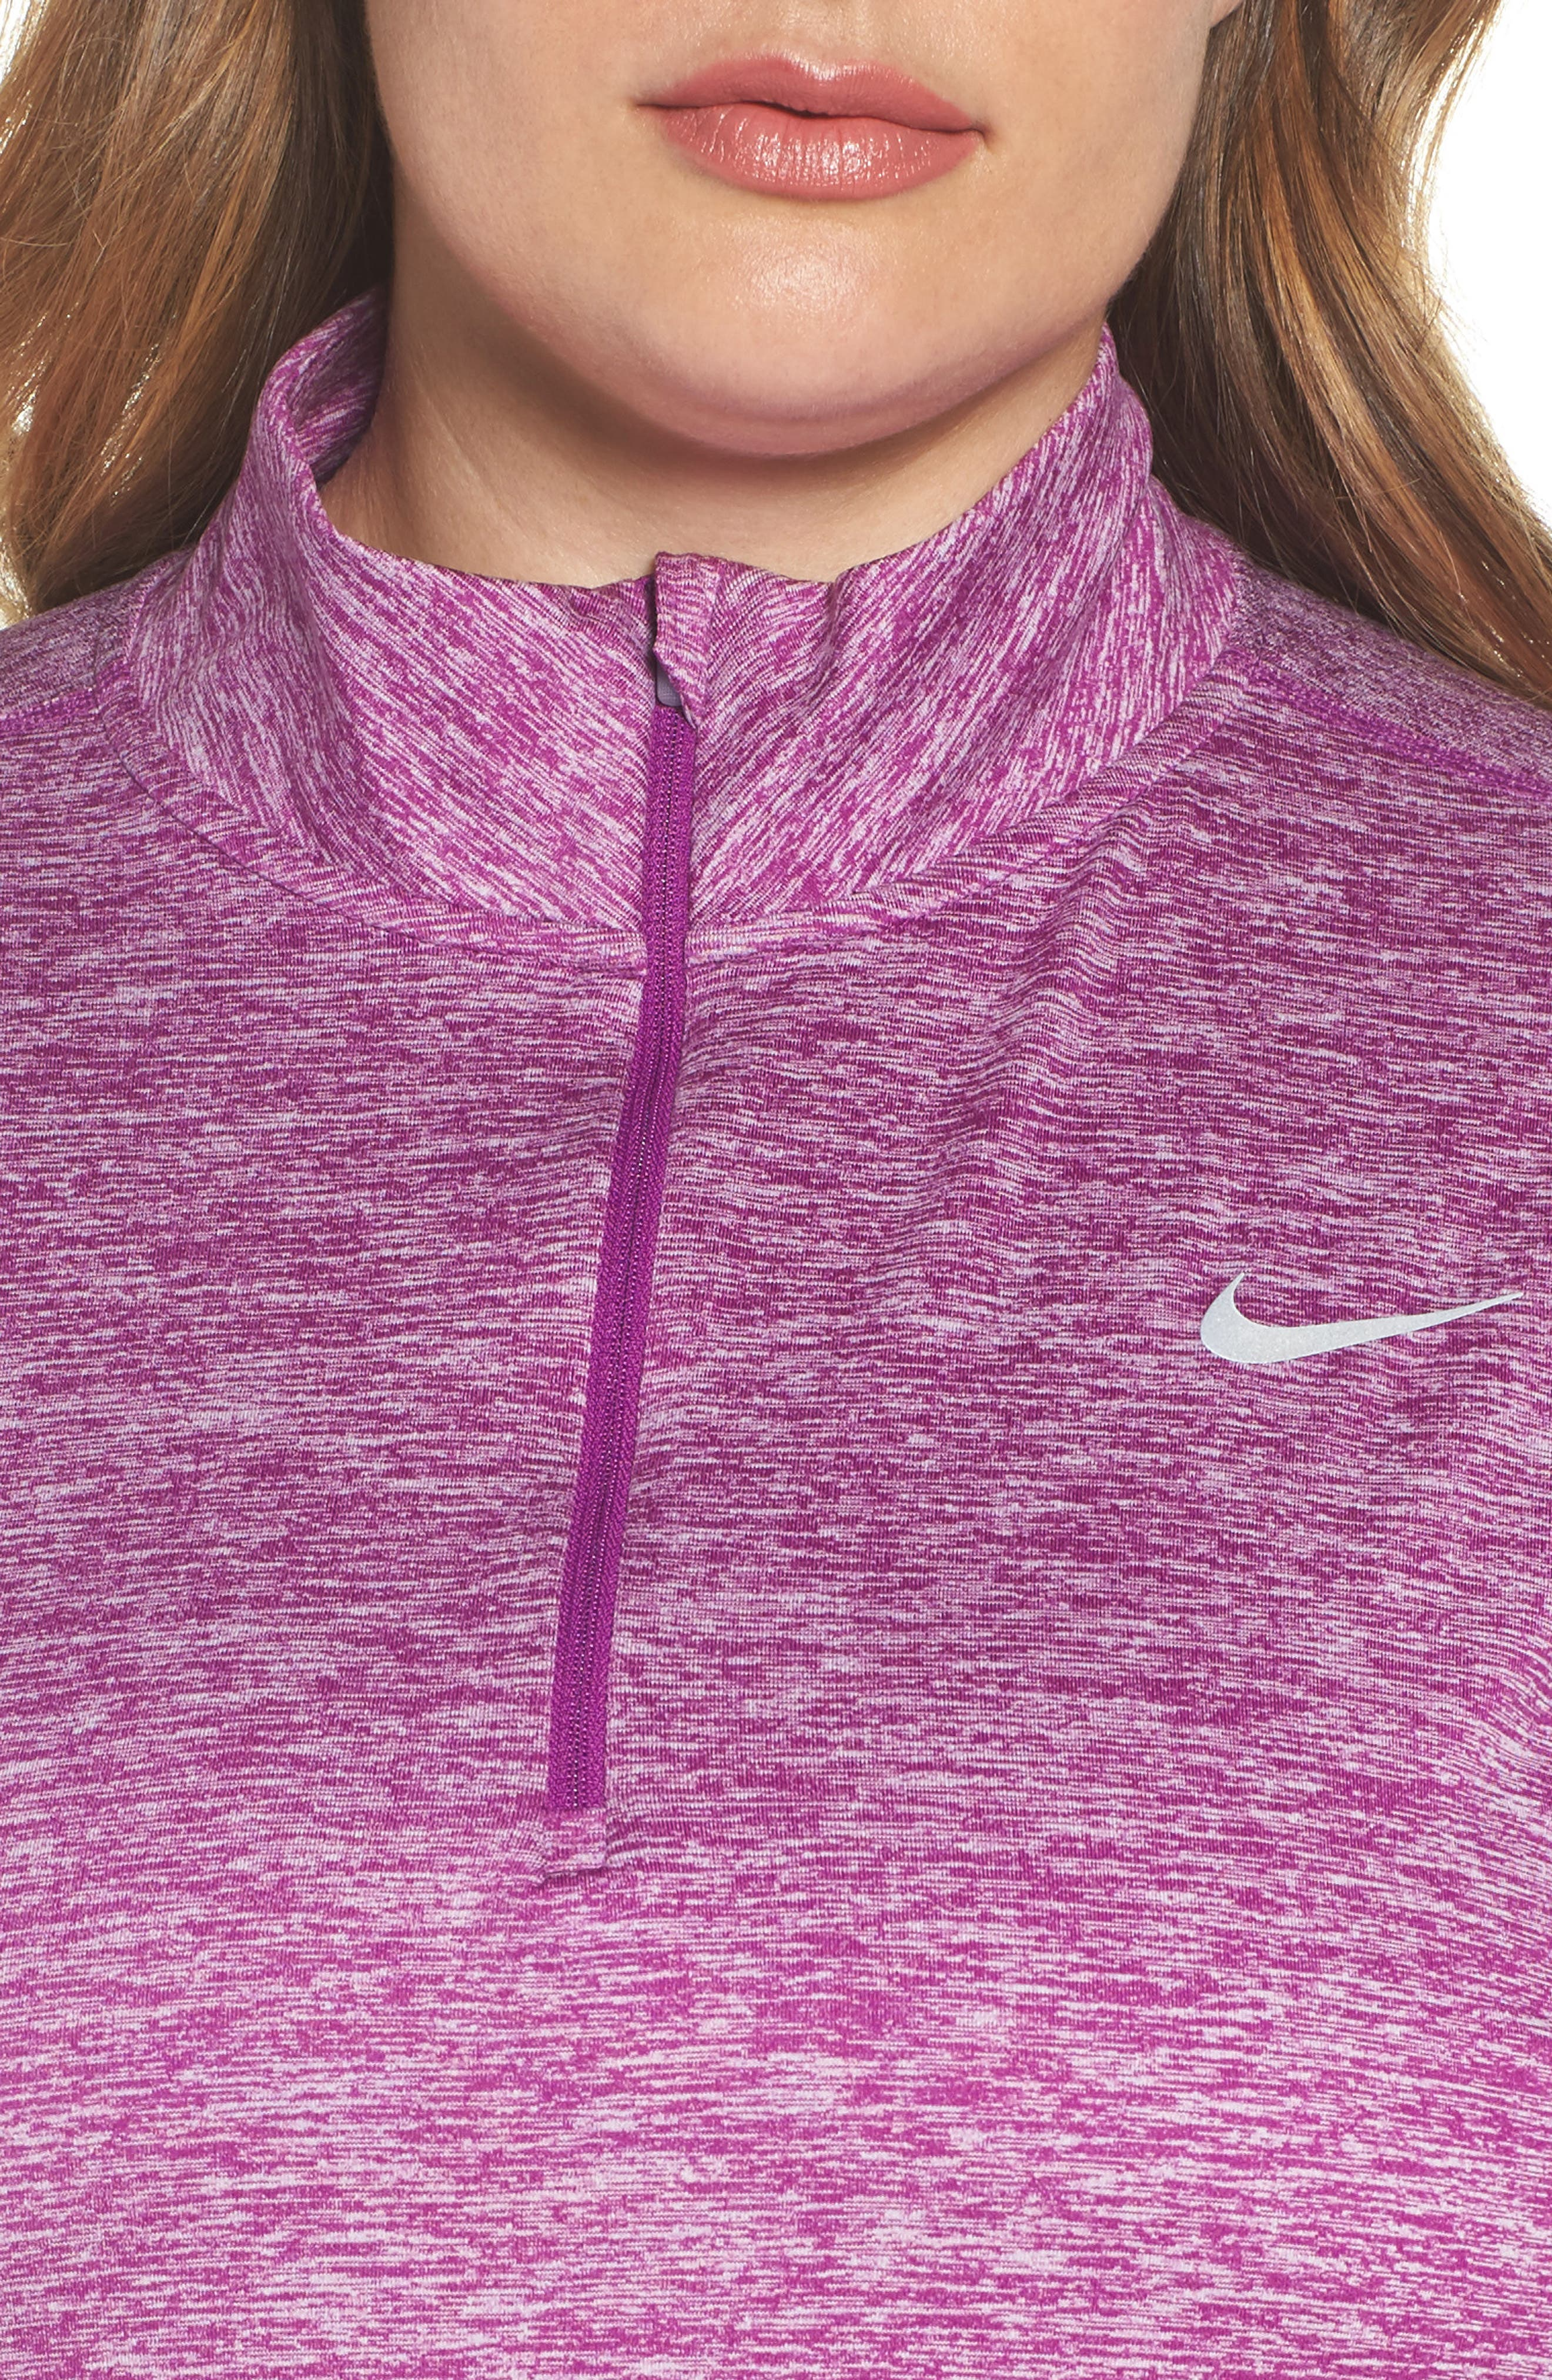 Dry Element Half Zip Top,                             Alternate thumbnail 4, color,                             Bold Berry/ Heather